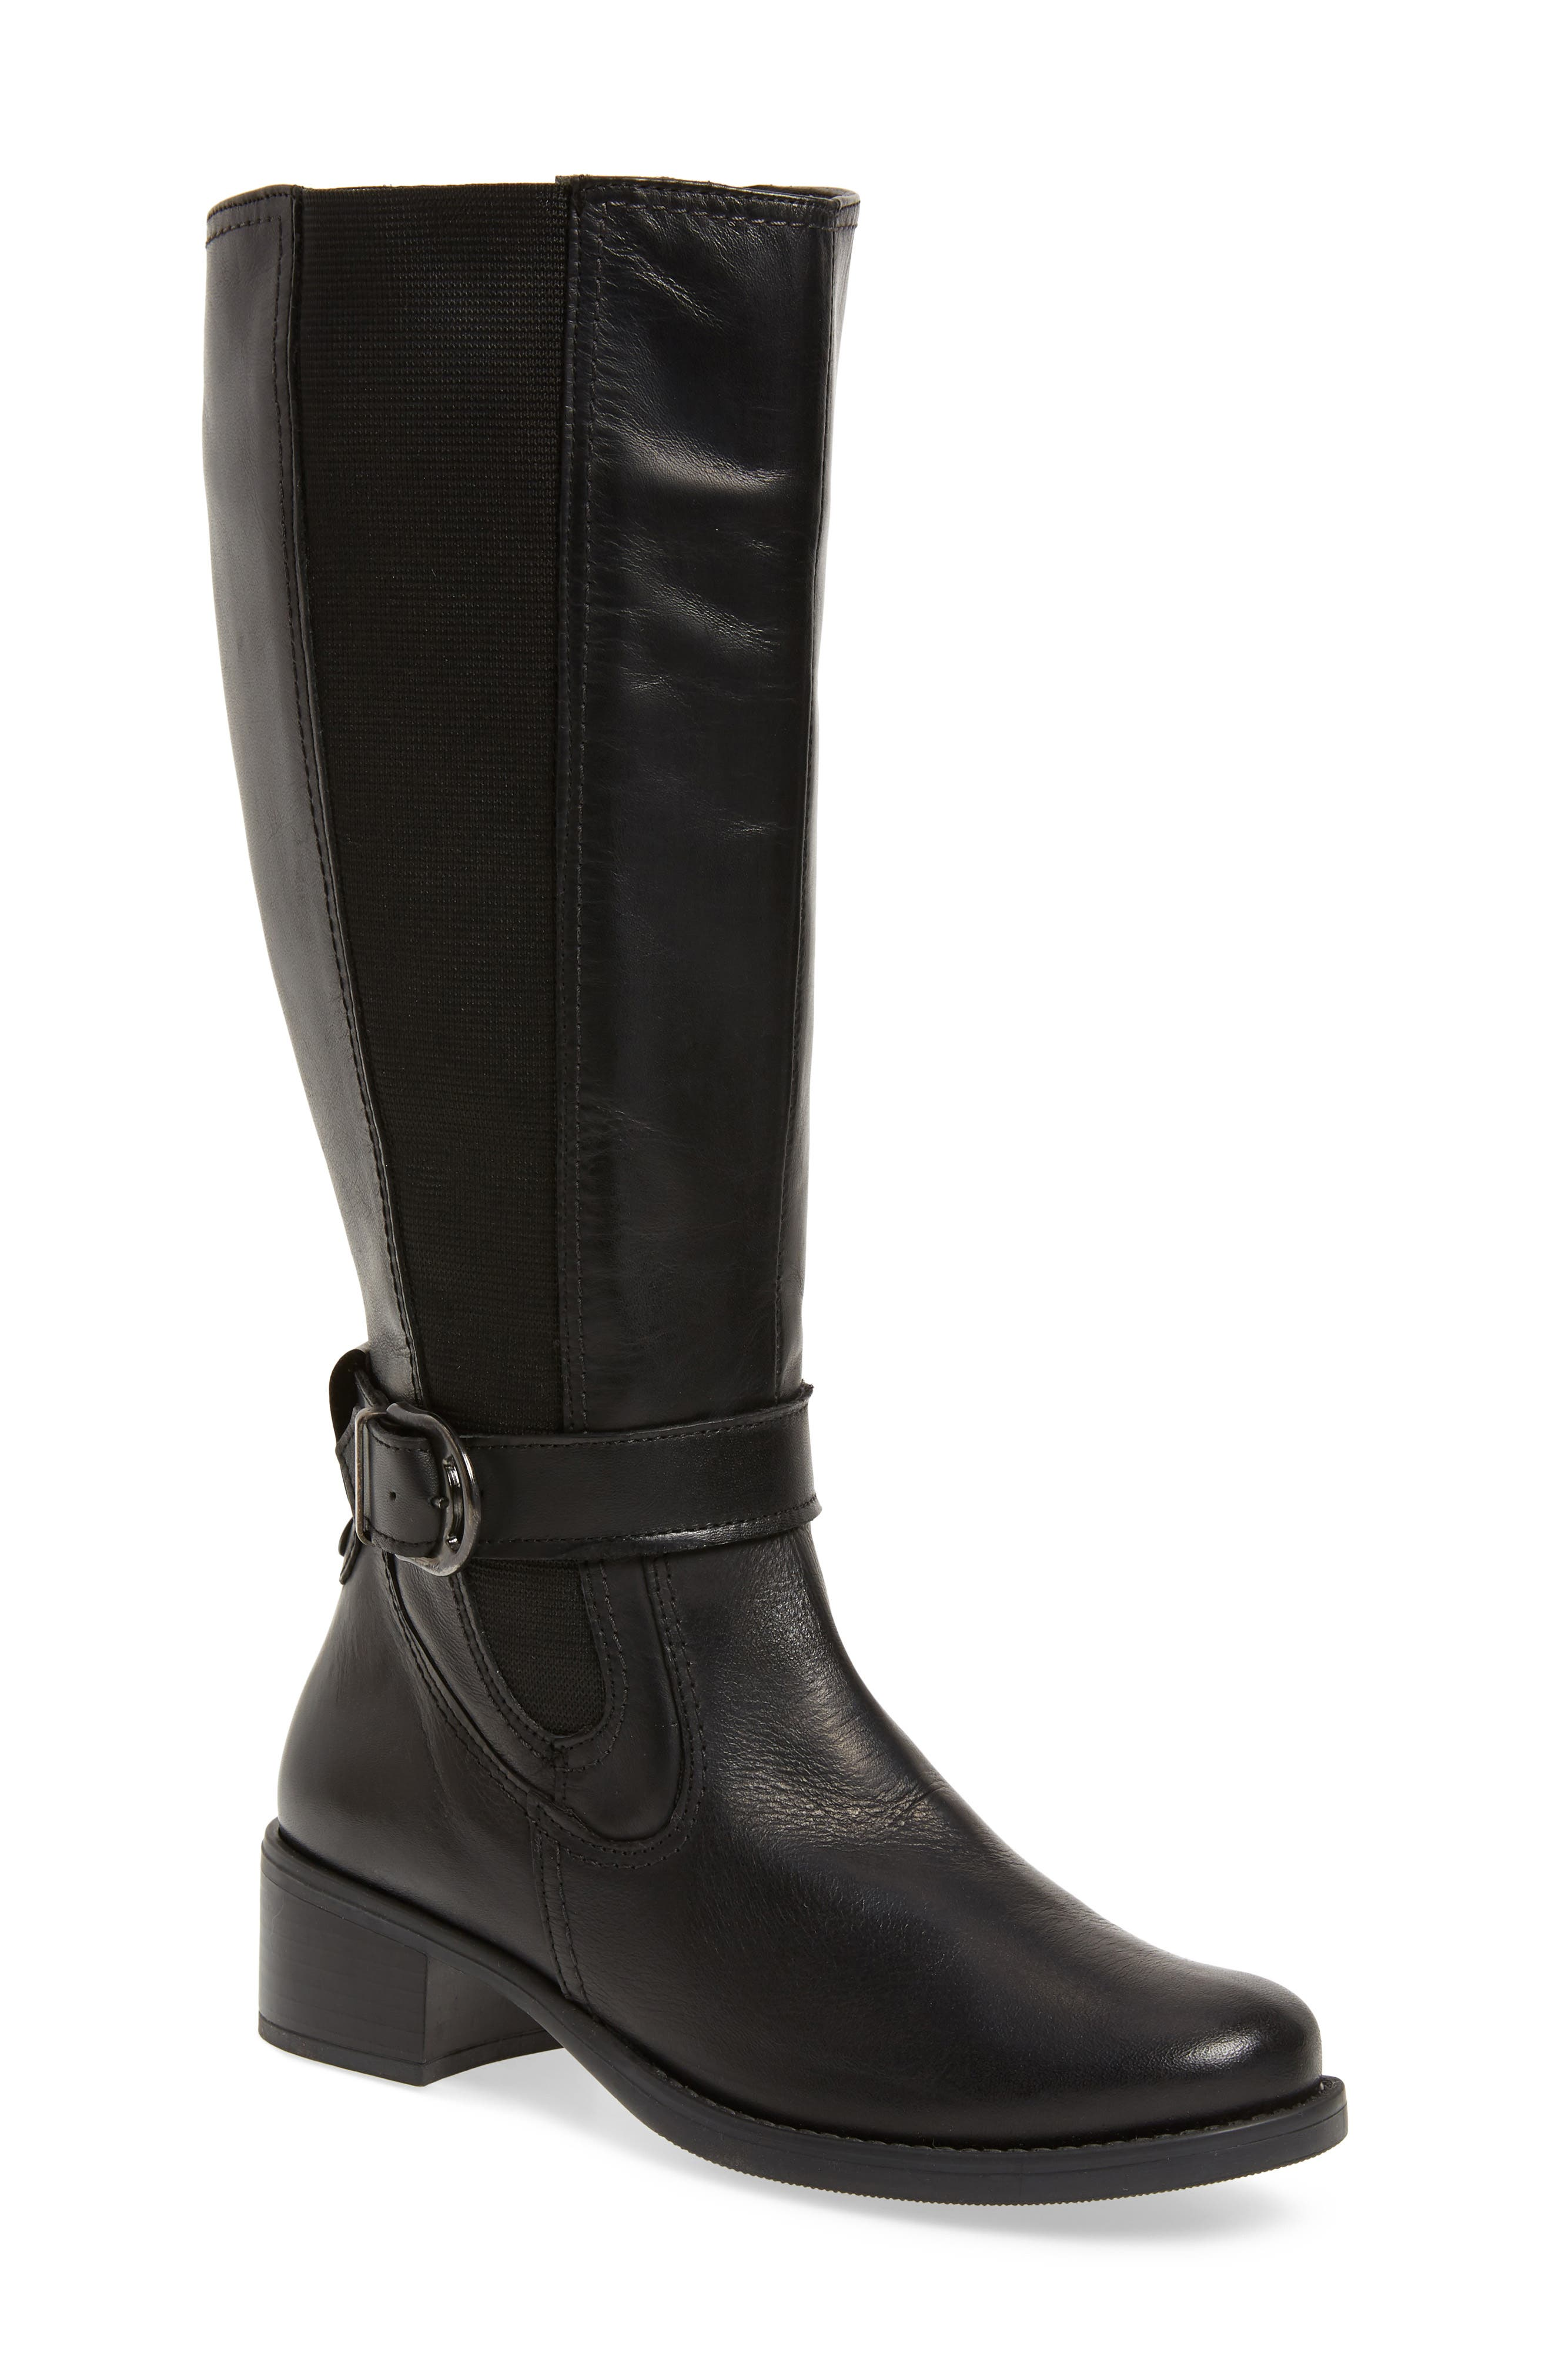 David Tate Amalfi 16 Boot, Black